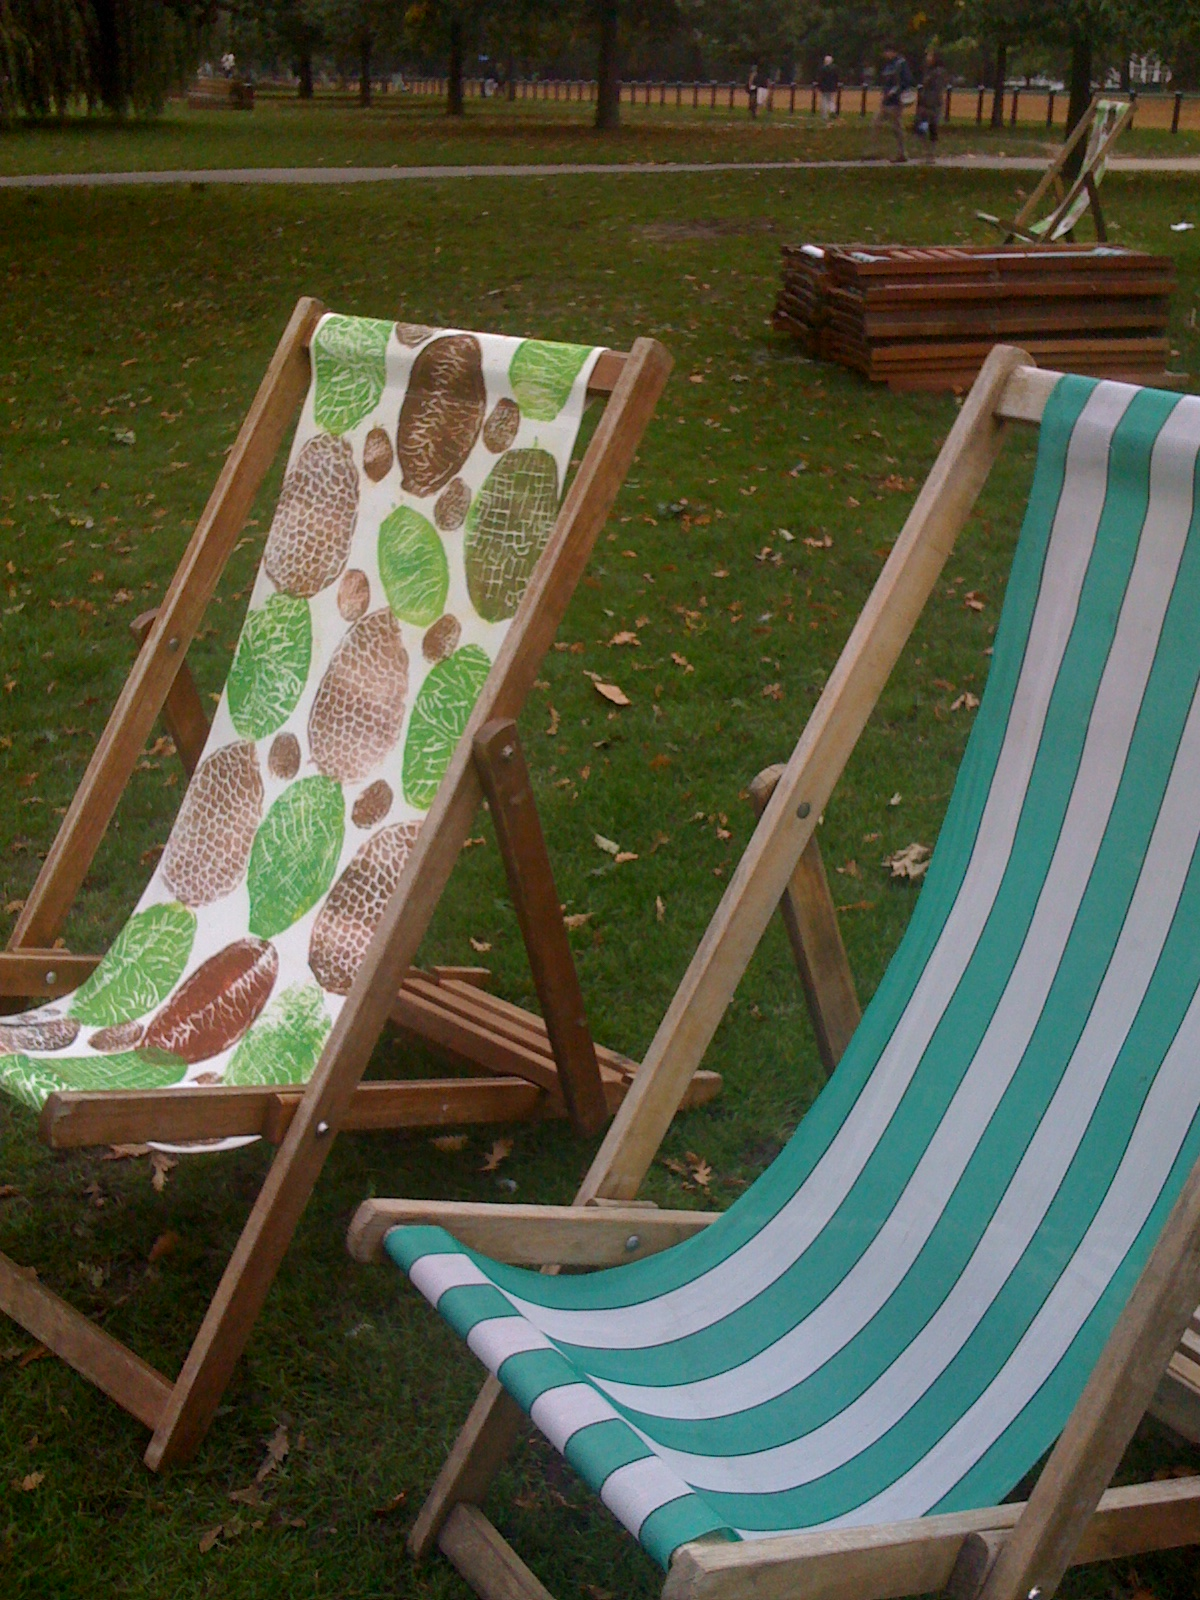 London+Hyde+Park+deckchair